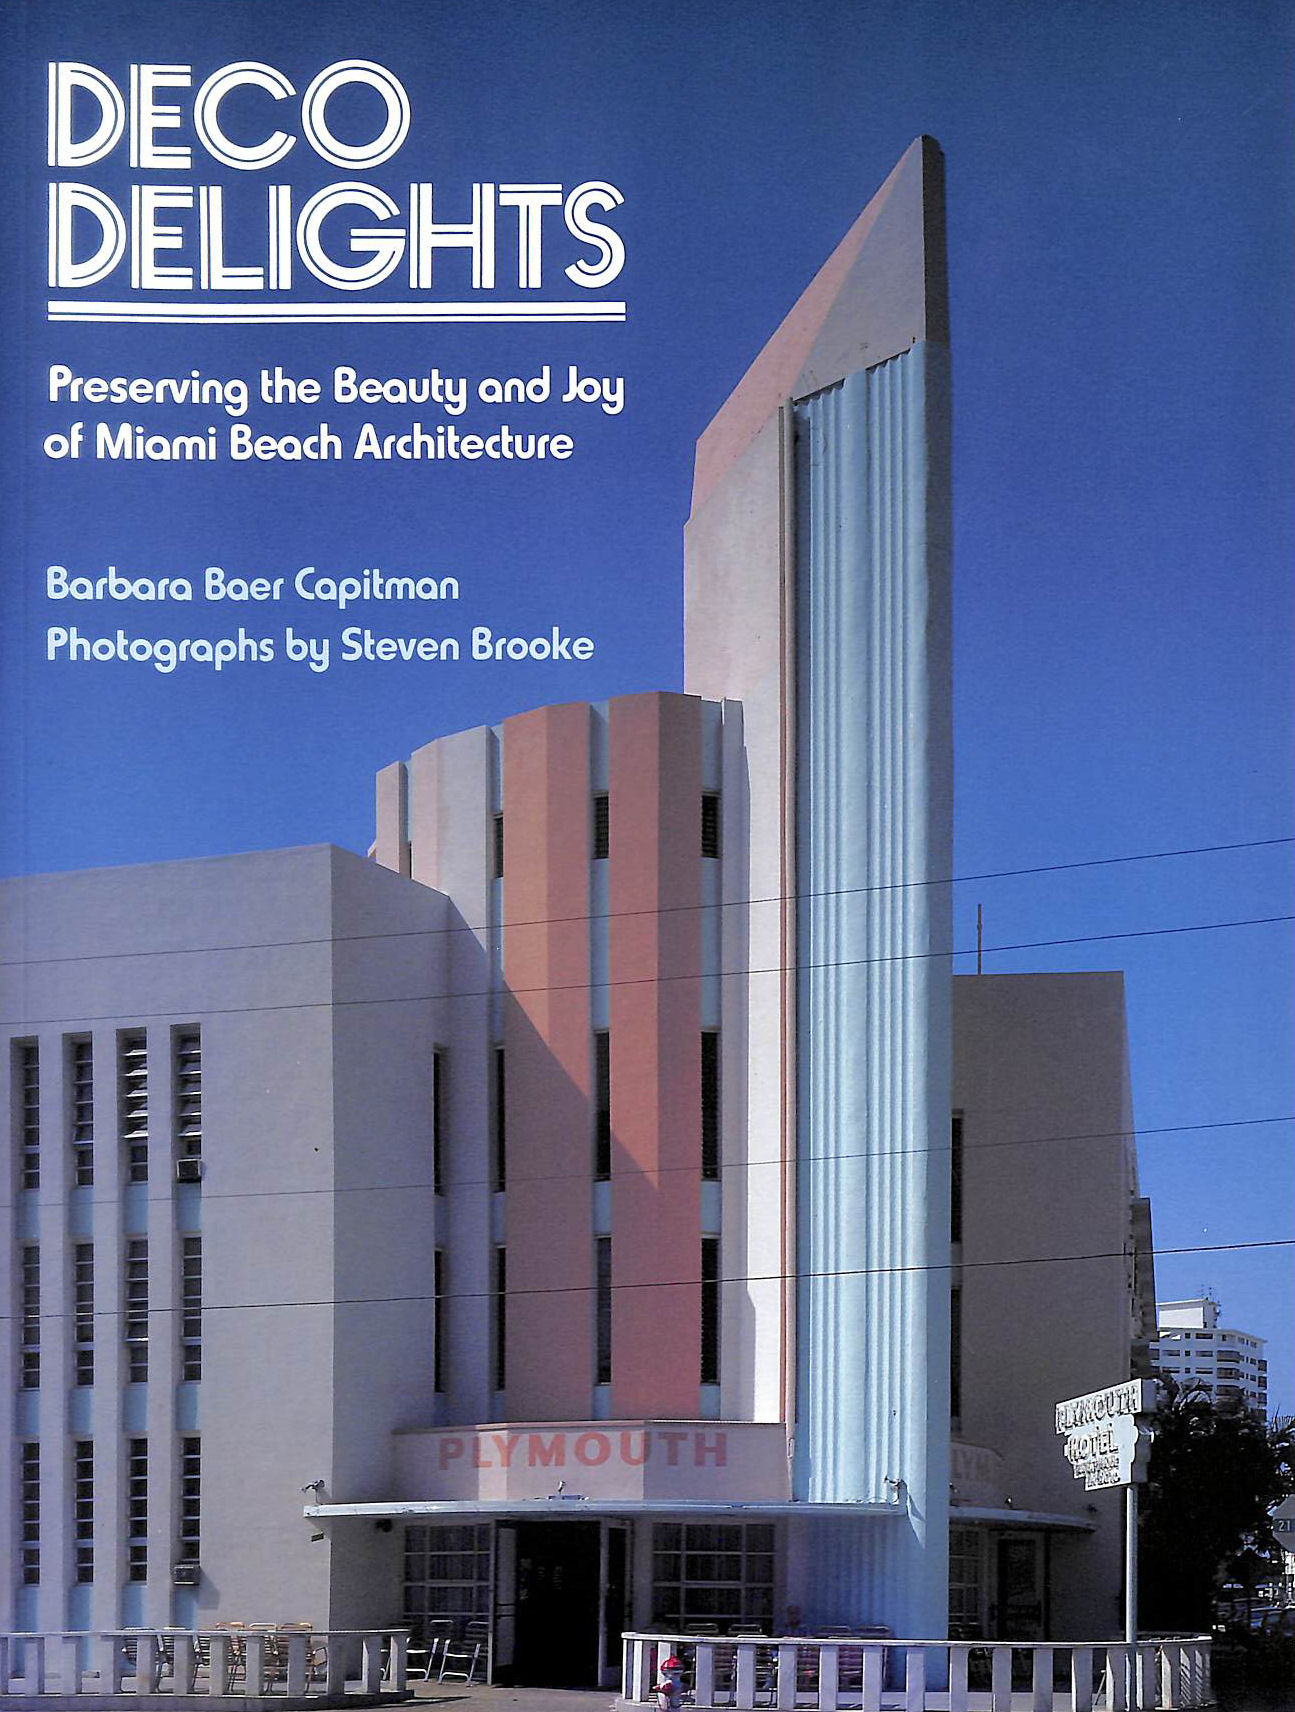 Image for Deco Delights. Preserving the Beauty and Joy of Miami Beach Architecture